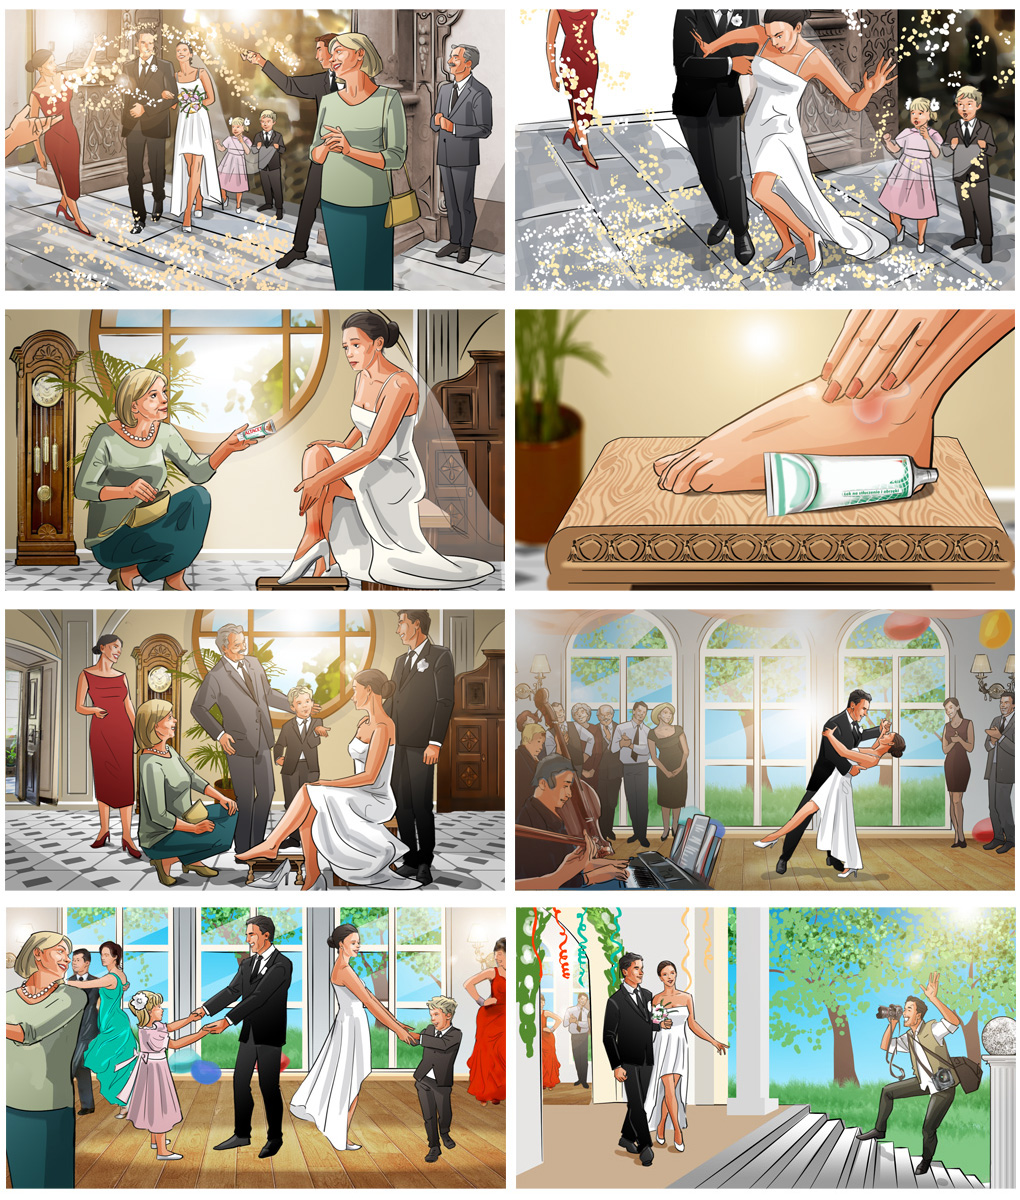 wedding storyboard advertising